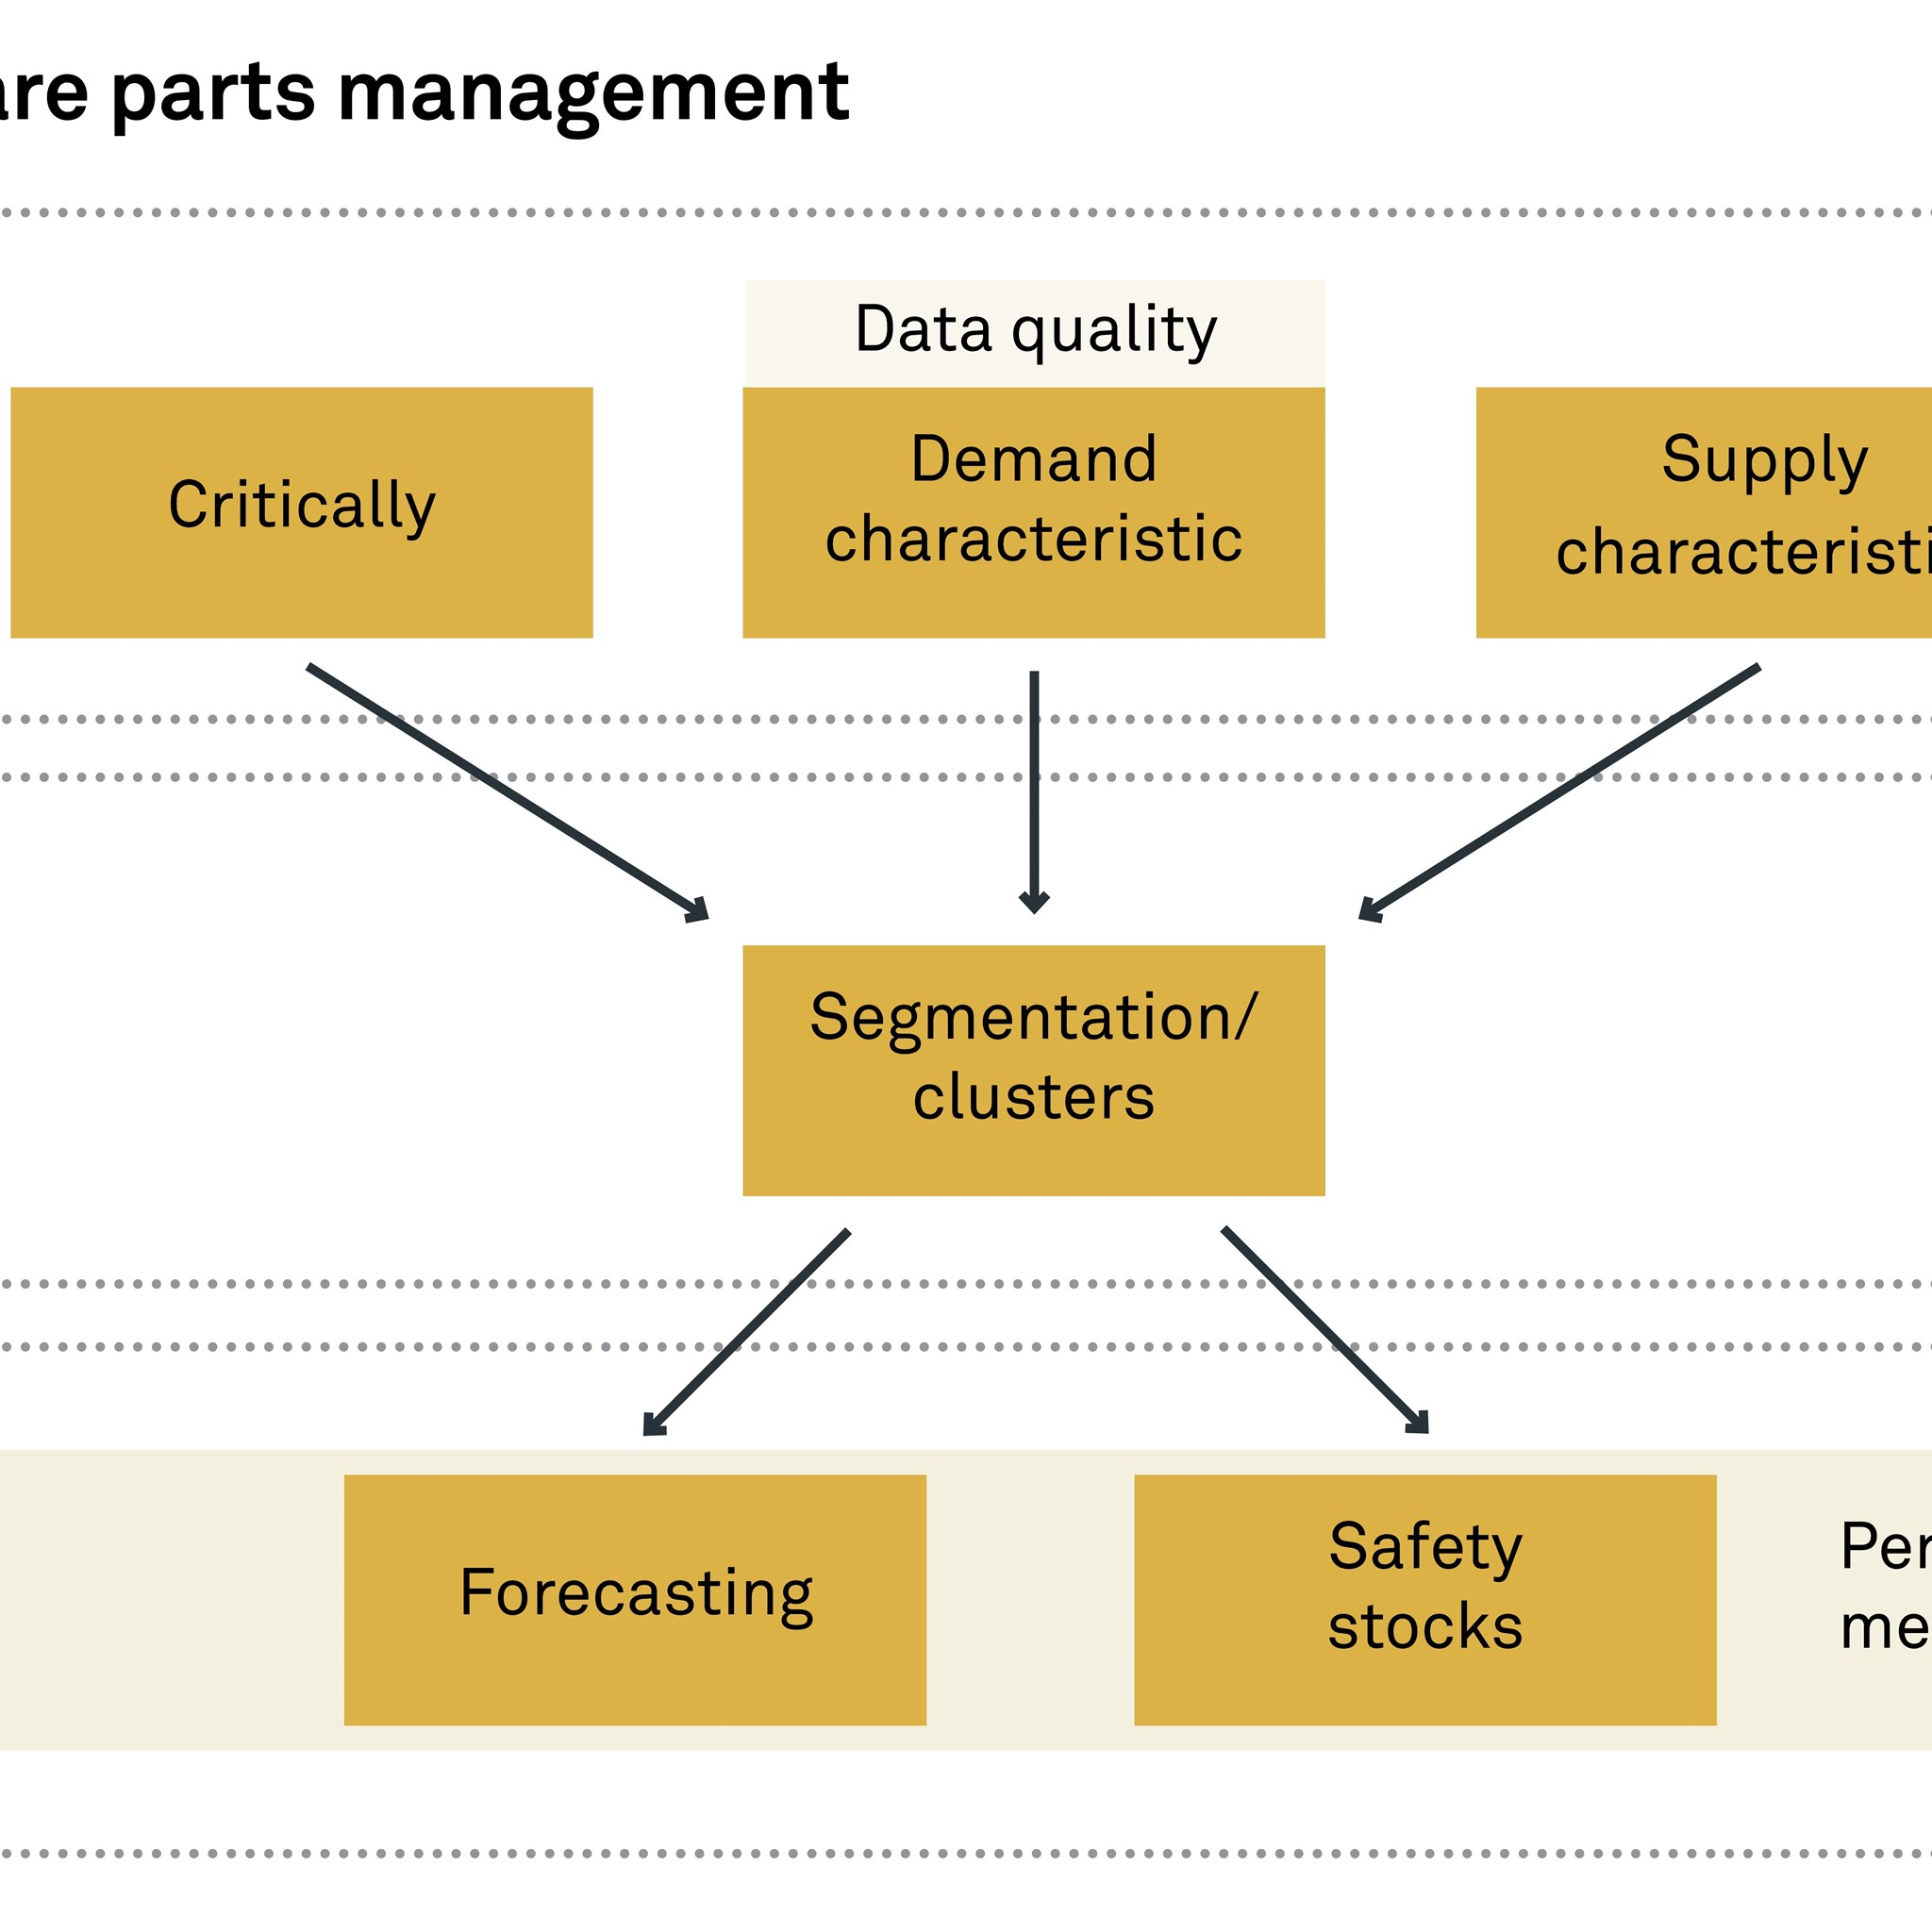 A structured method to manage the demand for spare parts.